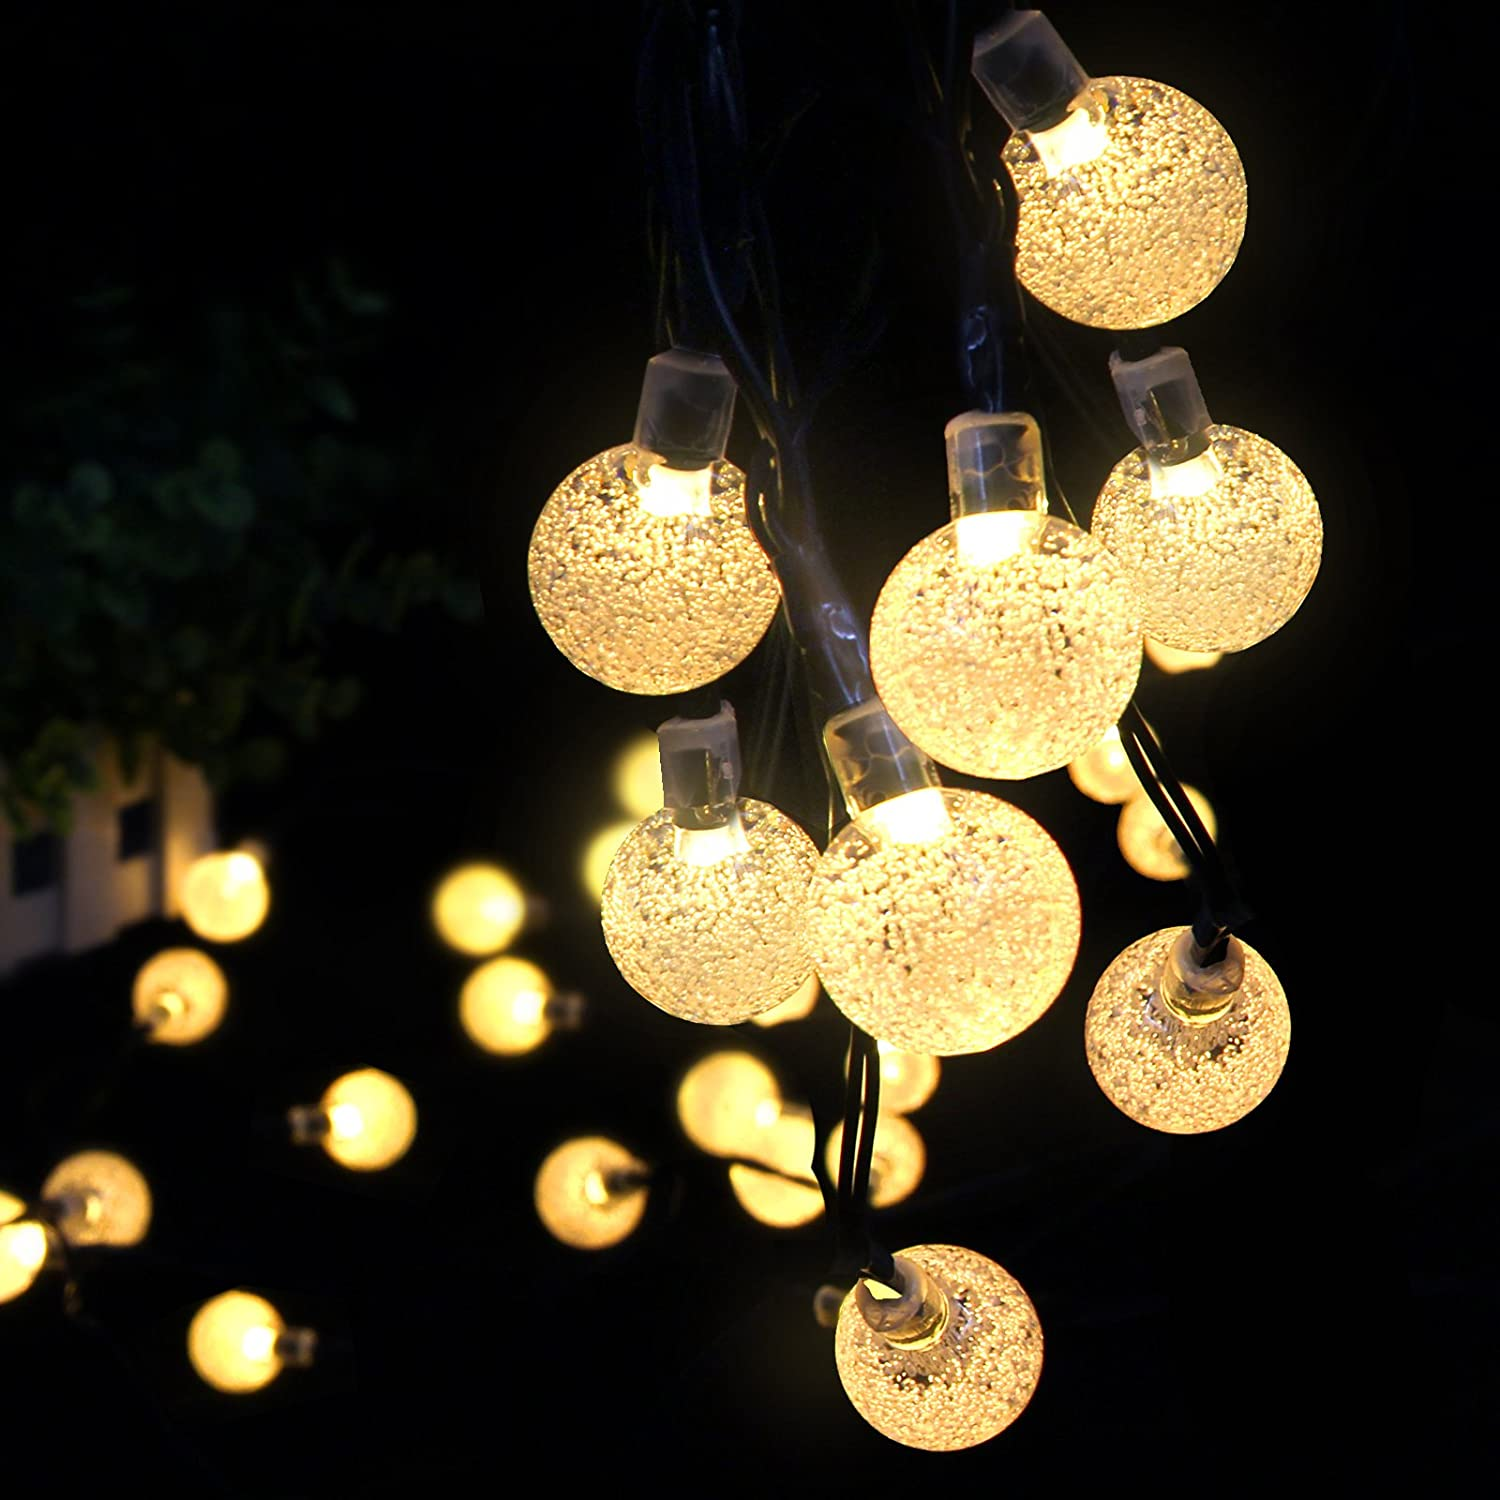 Solar outdoor string lights ascher 30 led fairy light warm white solar outdoor string lights ascher 30 led fairy light warm white crystal ball christmas globe lights for outdoor yard garden homegarden pathchrismas workwithnaturefo